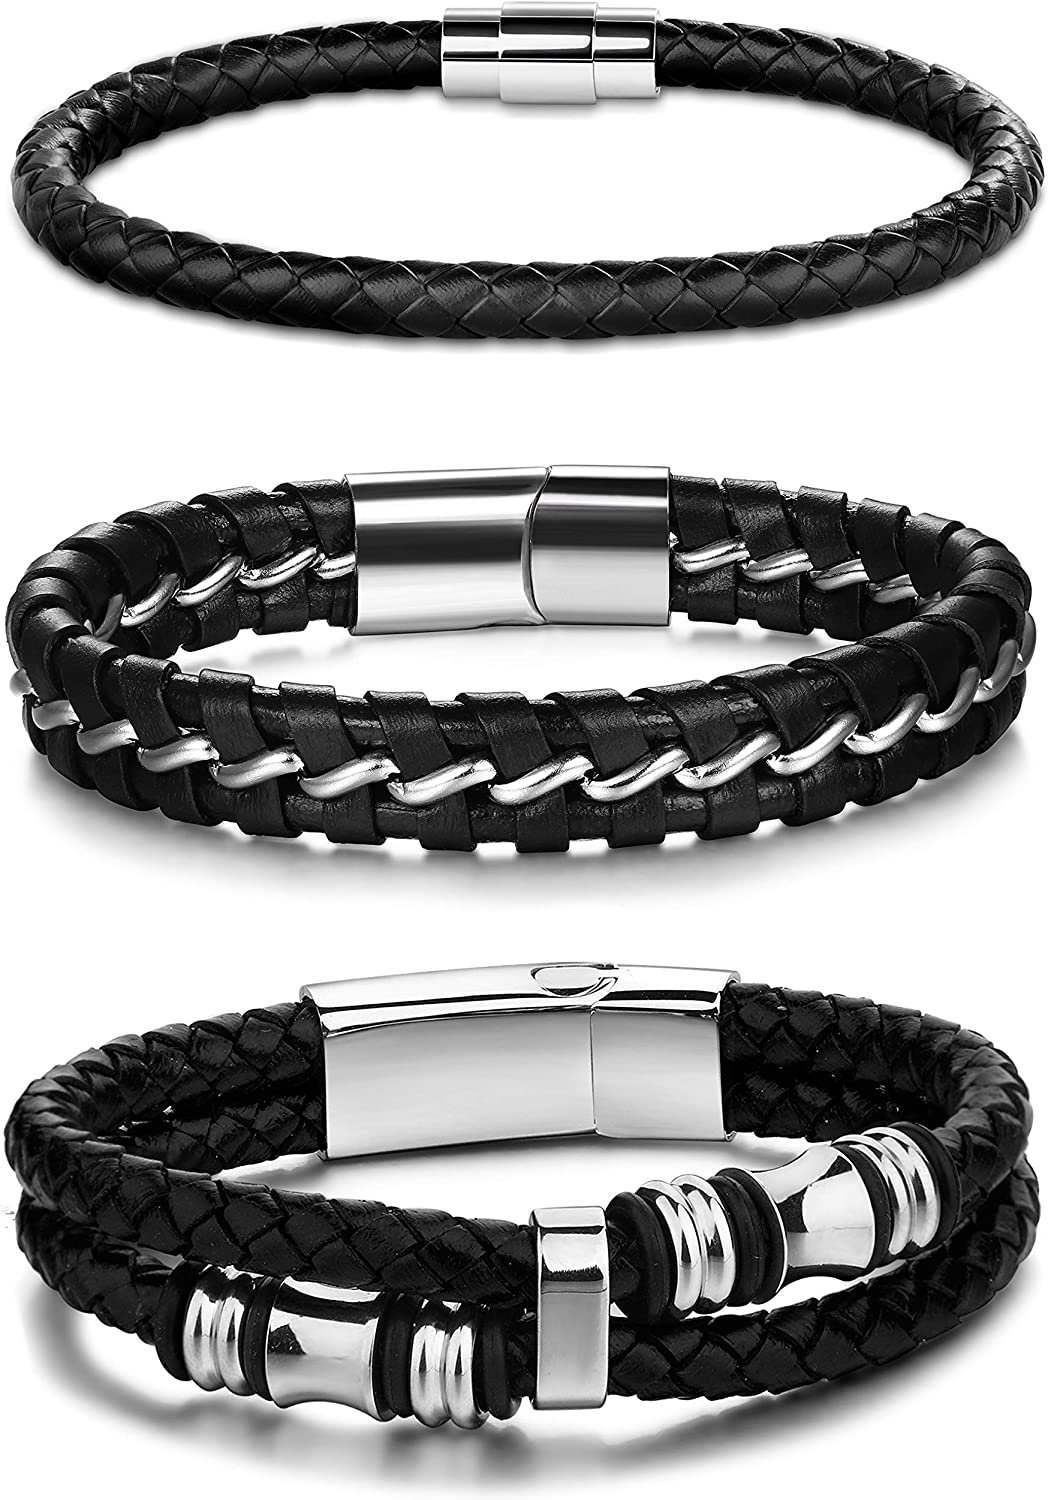 Jstyle 3Pcs Stainless Steel Braided Leather Bracelet for Men Women Leather Wrist Band Cuff Bangle Bracelet Magnetic Clasp 7.5-8.5 inches: Clothing, Shoes & Jewelry